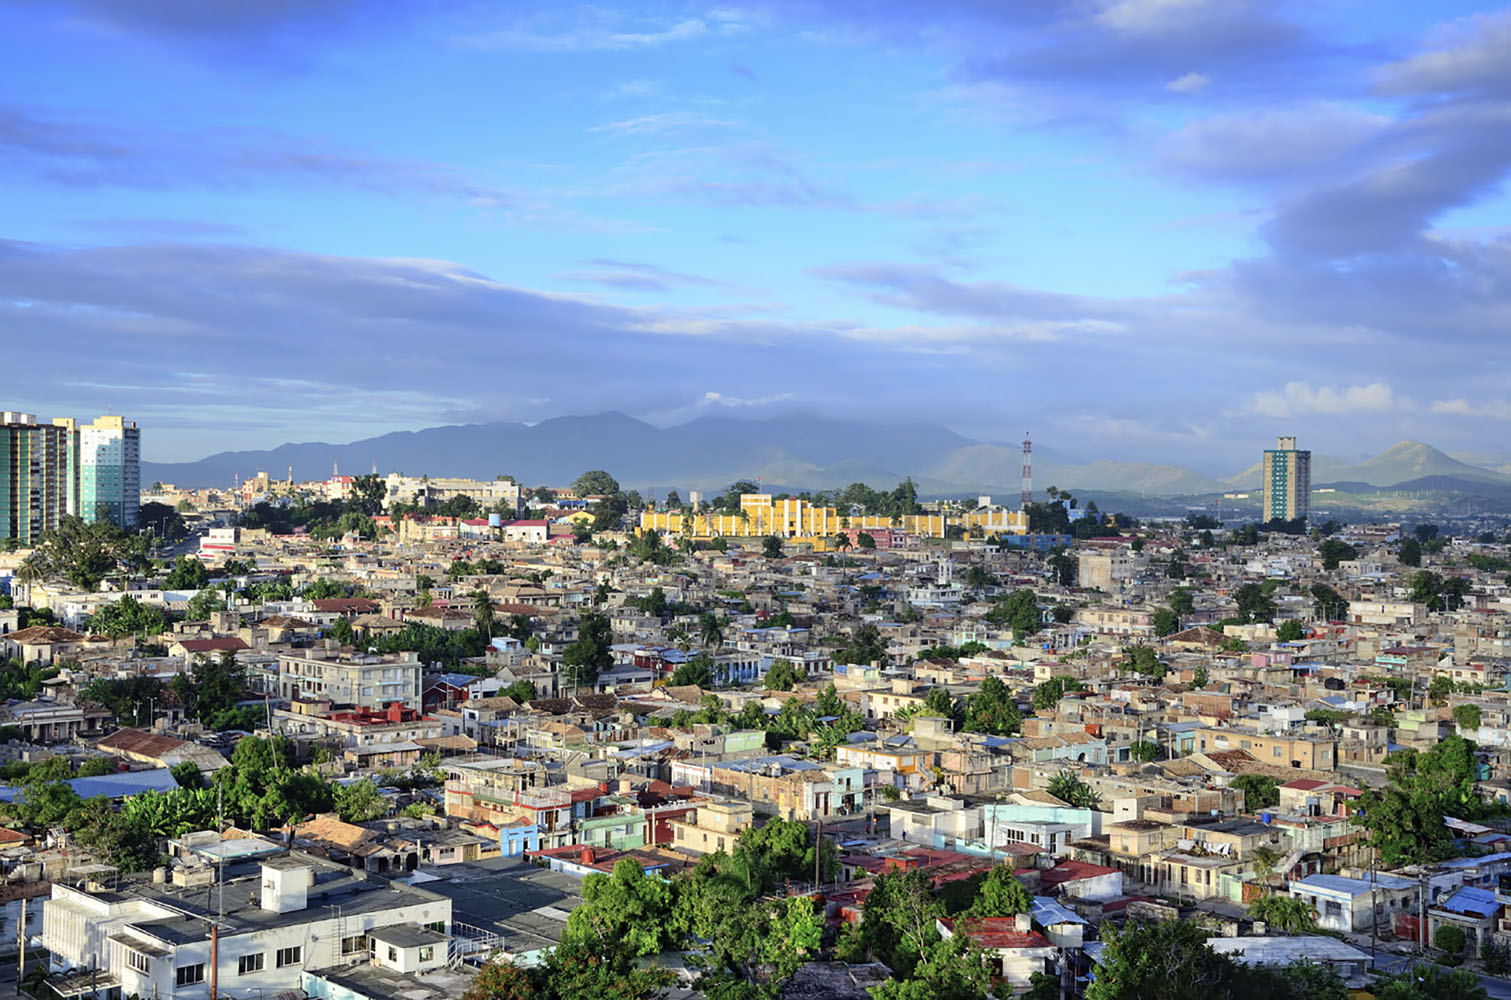 Santiago de Cuba is a cultural hub, nestled between the breathtaking Sierra Maestra mountain range and the dazzling Caribbean Sea.